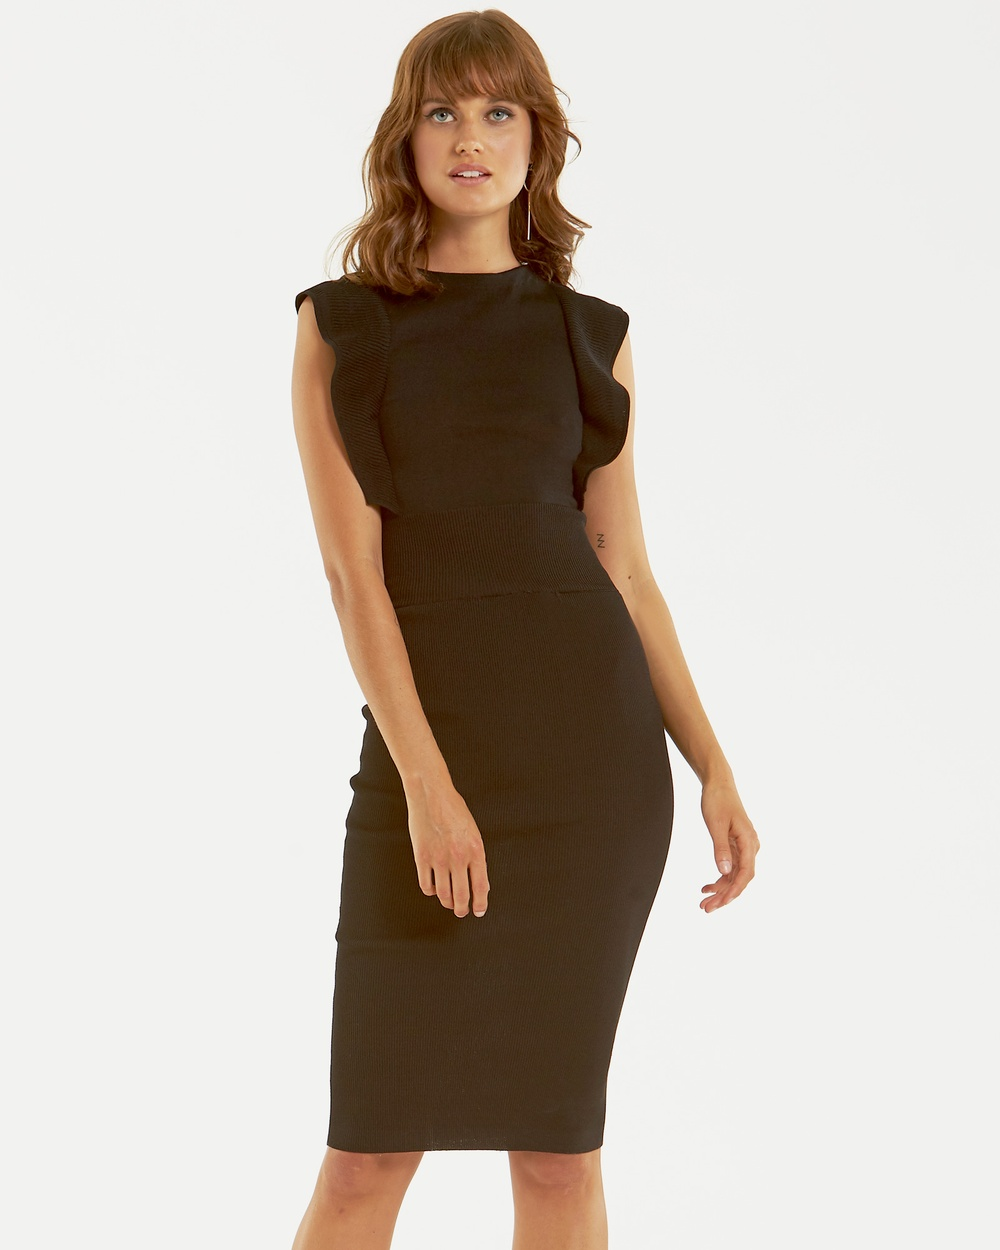 Amelius Obsessed Knit Dress Bodycon Dresses Black Obsessed Knit Dress